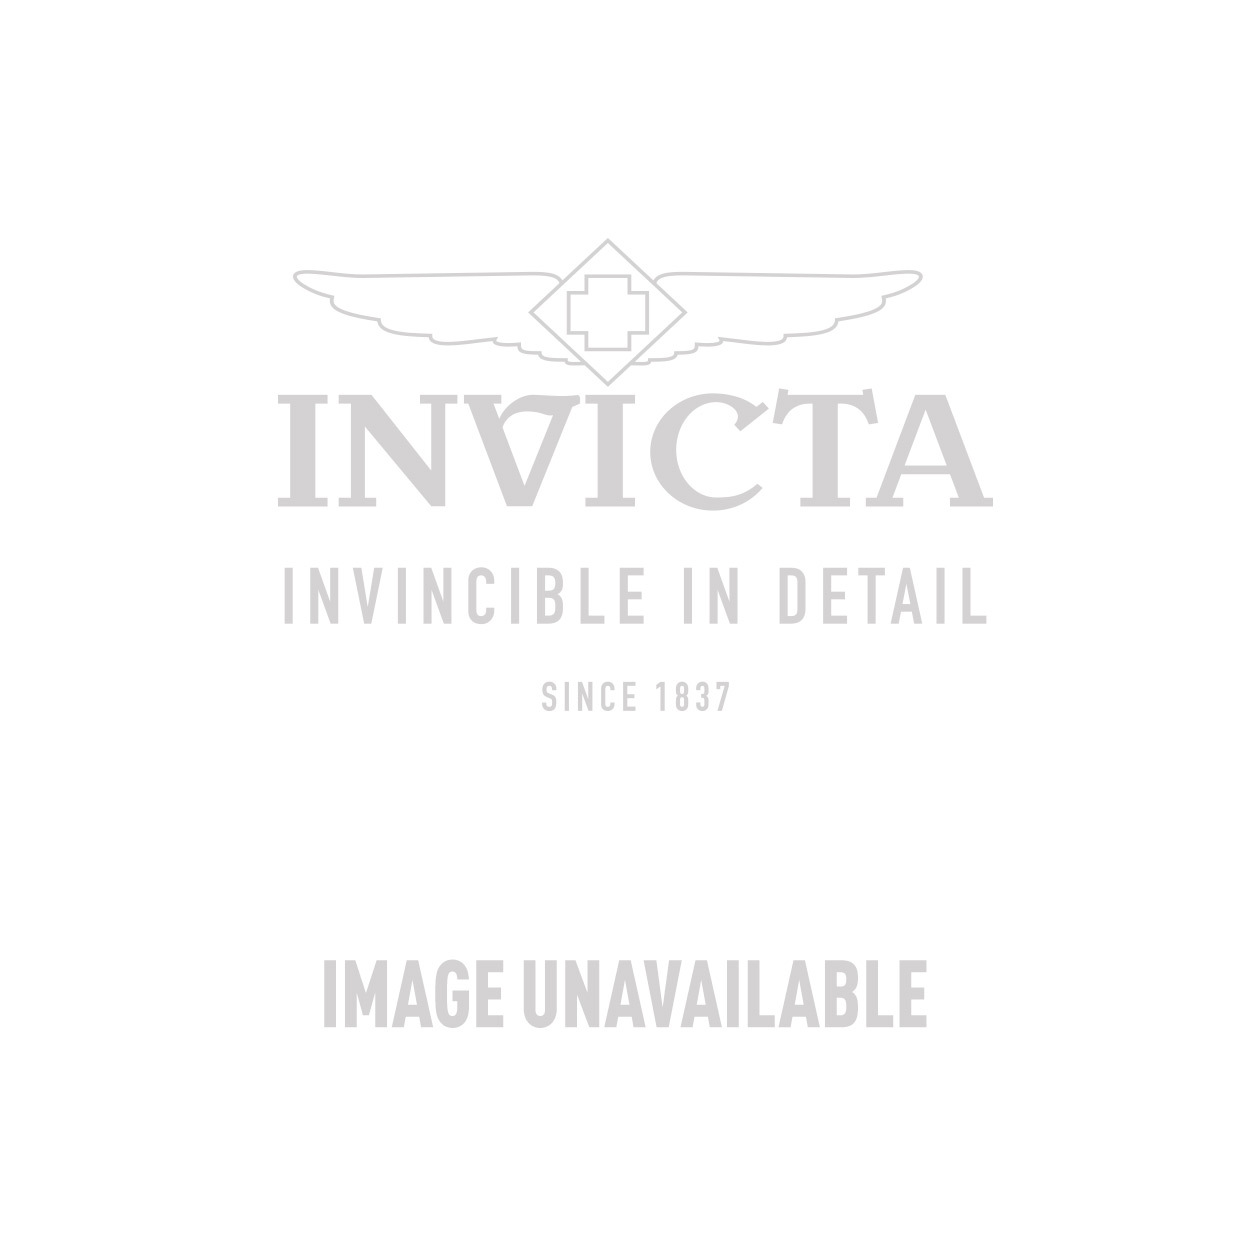 Invicta Reserve Swiss Made Quartz Watch - Rose Gold, Black case with Rose Gold, Black tone Stainless Steel band - Model 6763